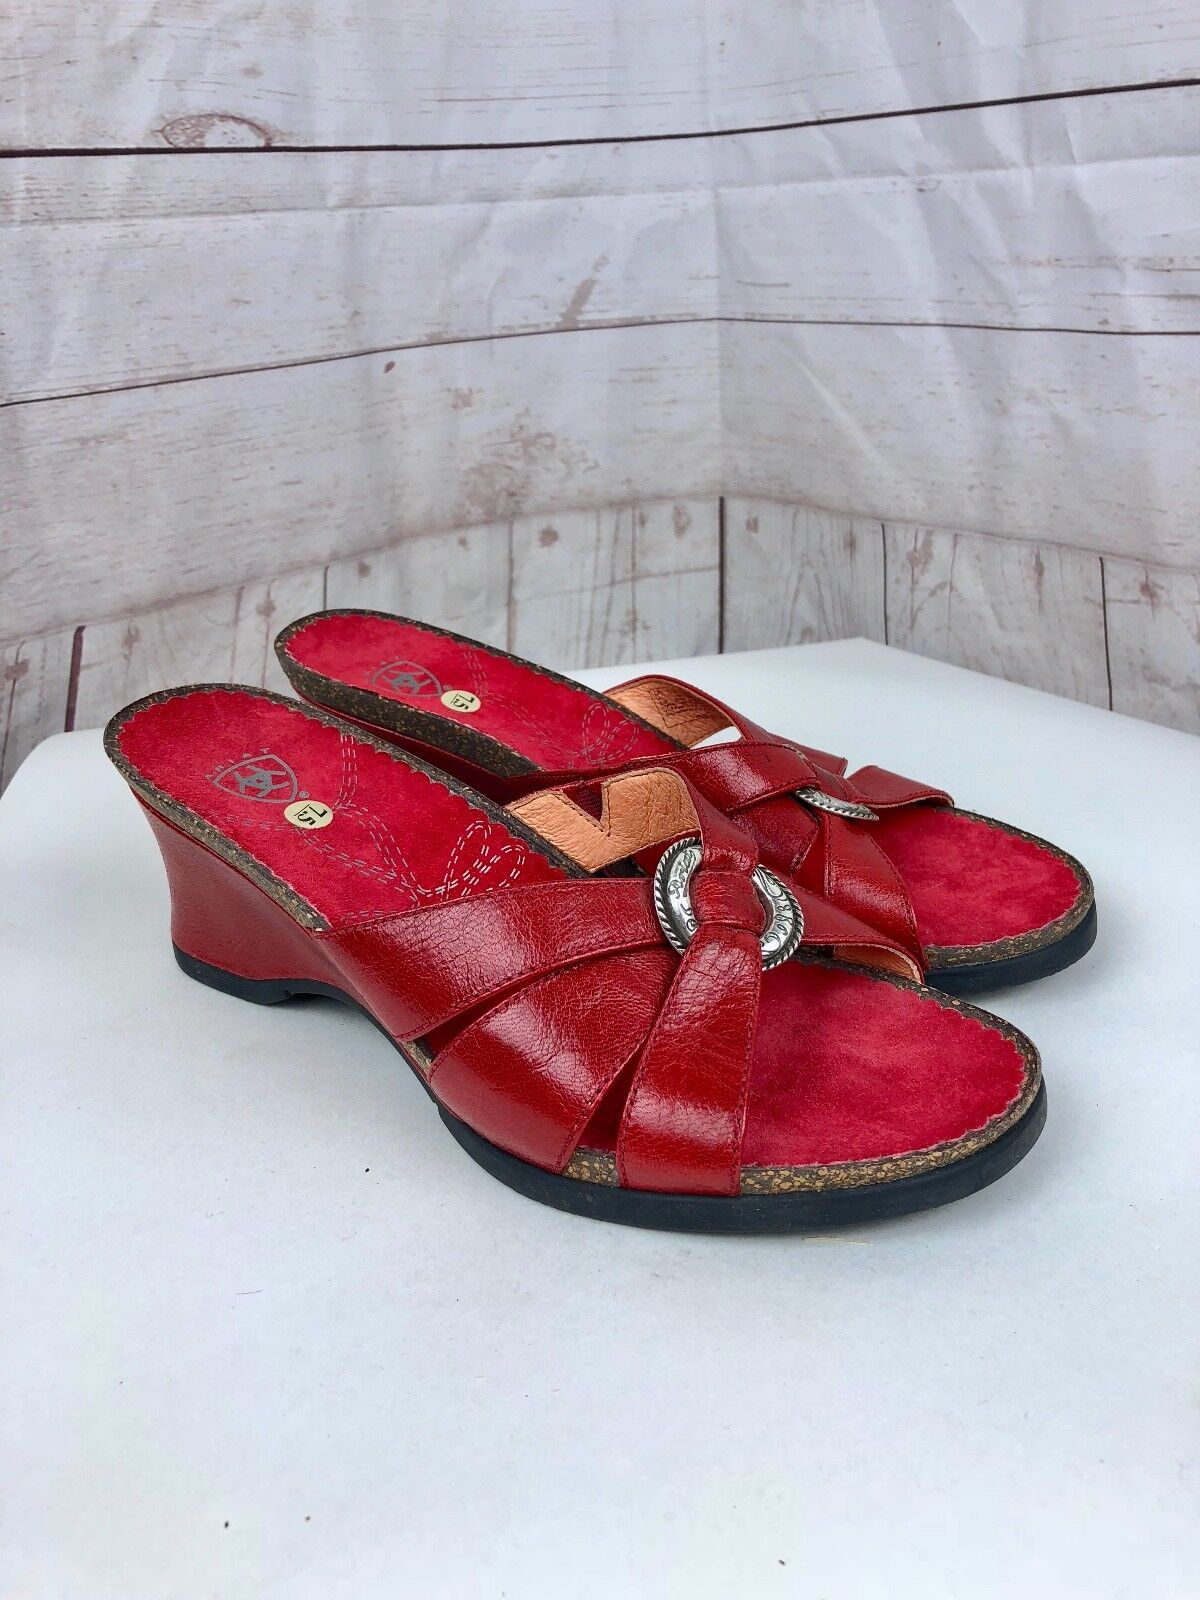 Ariat Women's Red Leather Strap Peep Toe Cork Wedge Sandal Size 7.5